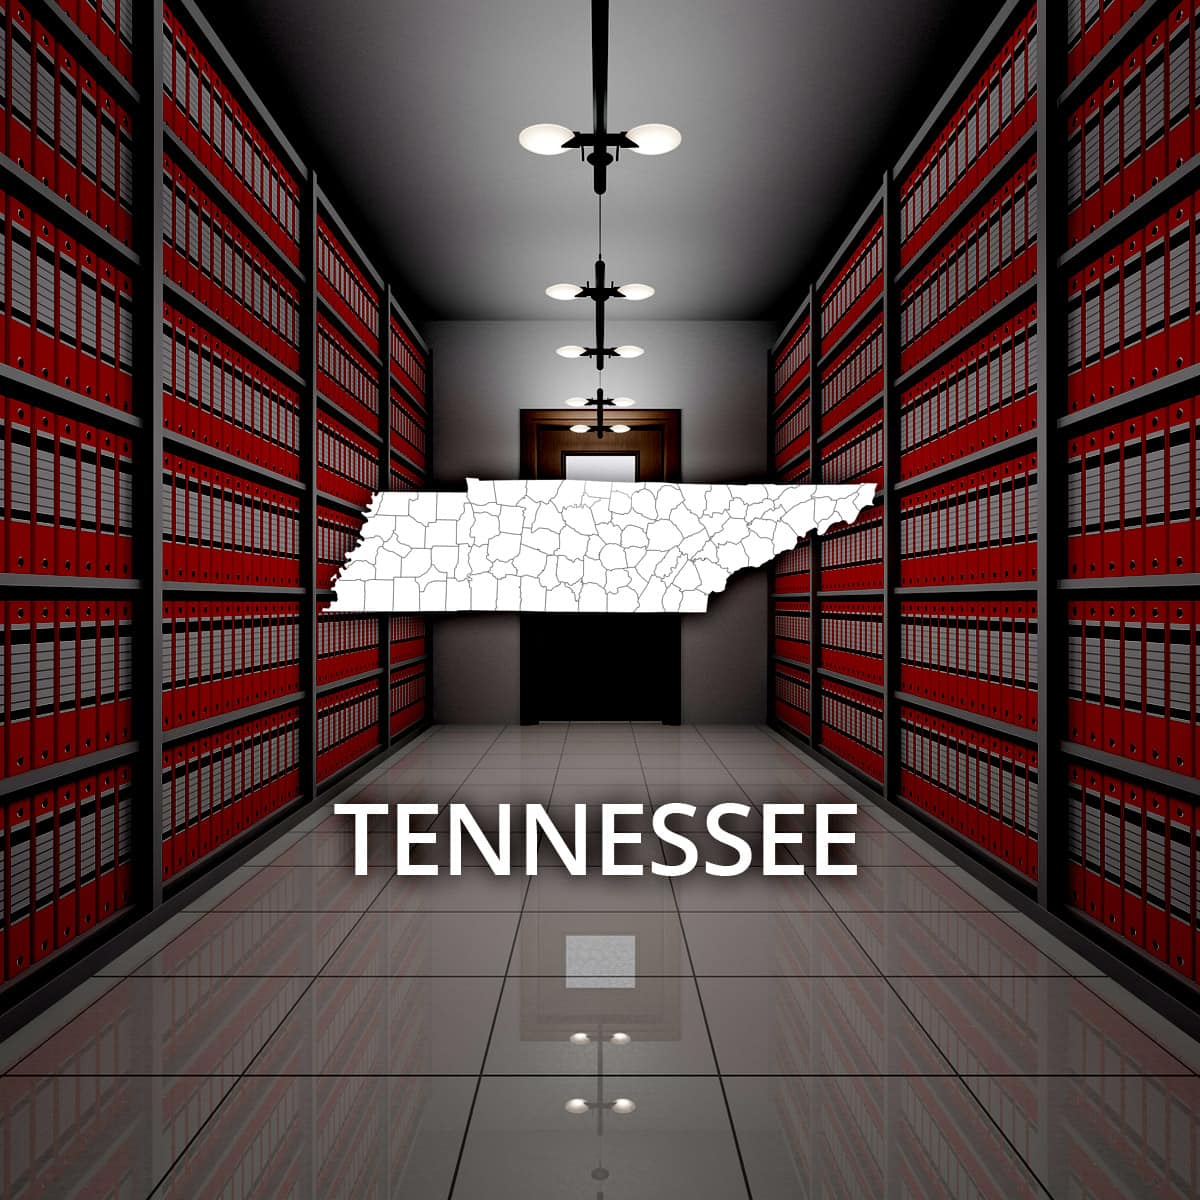 Tennessee Public Records